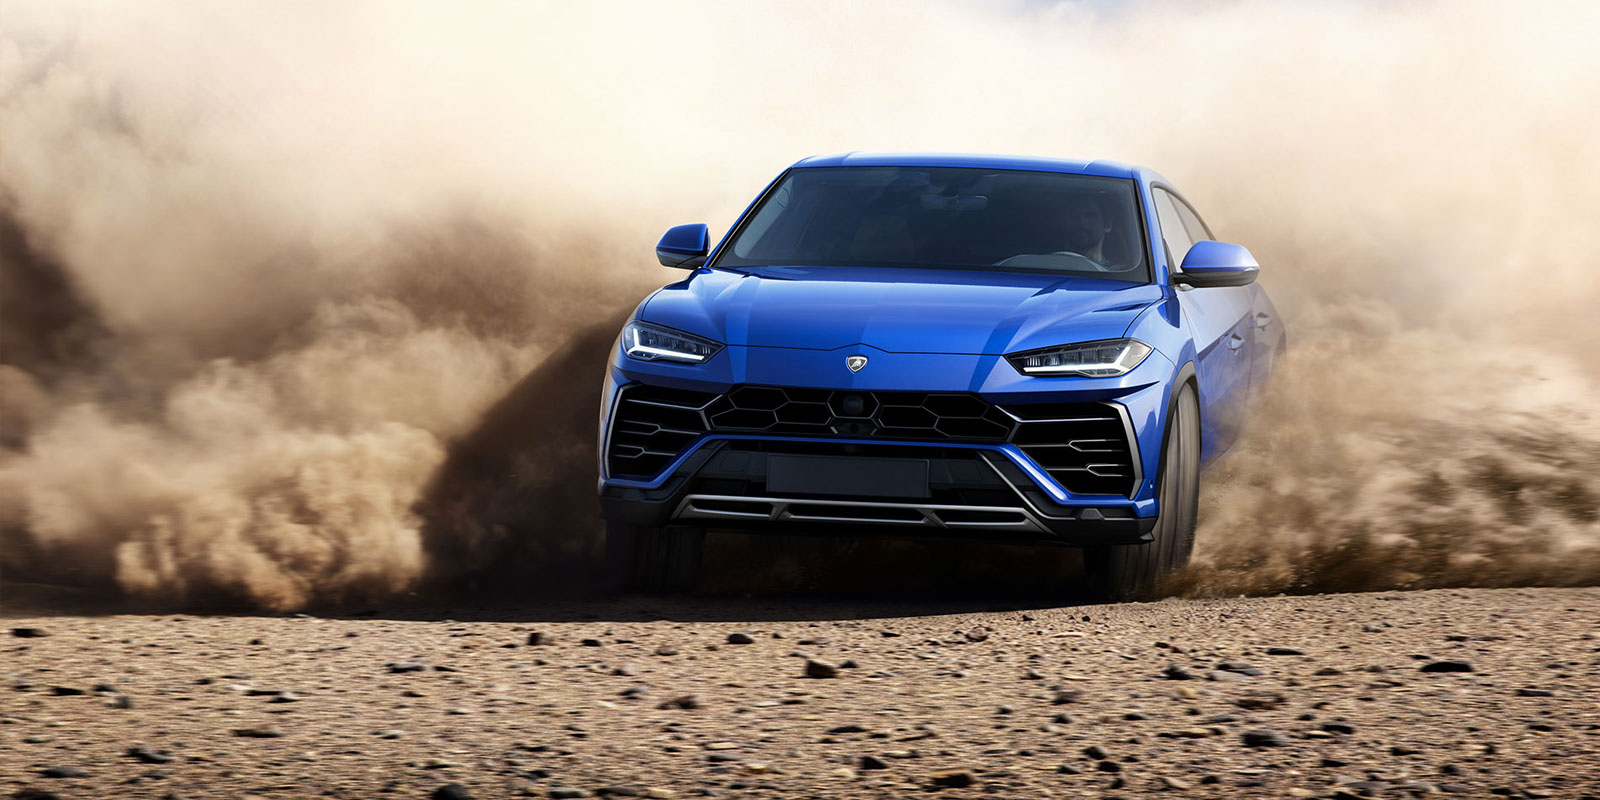 Lamborghini Urus - The World's First Super Sport Utility Vehicle image 9